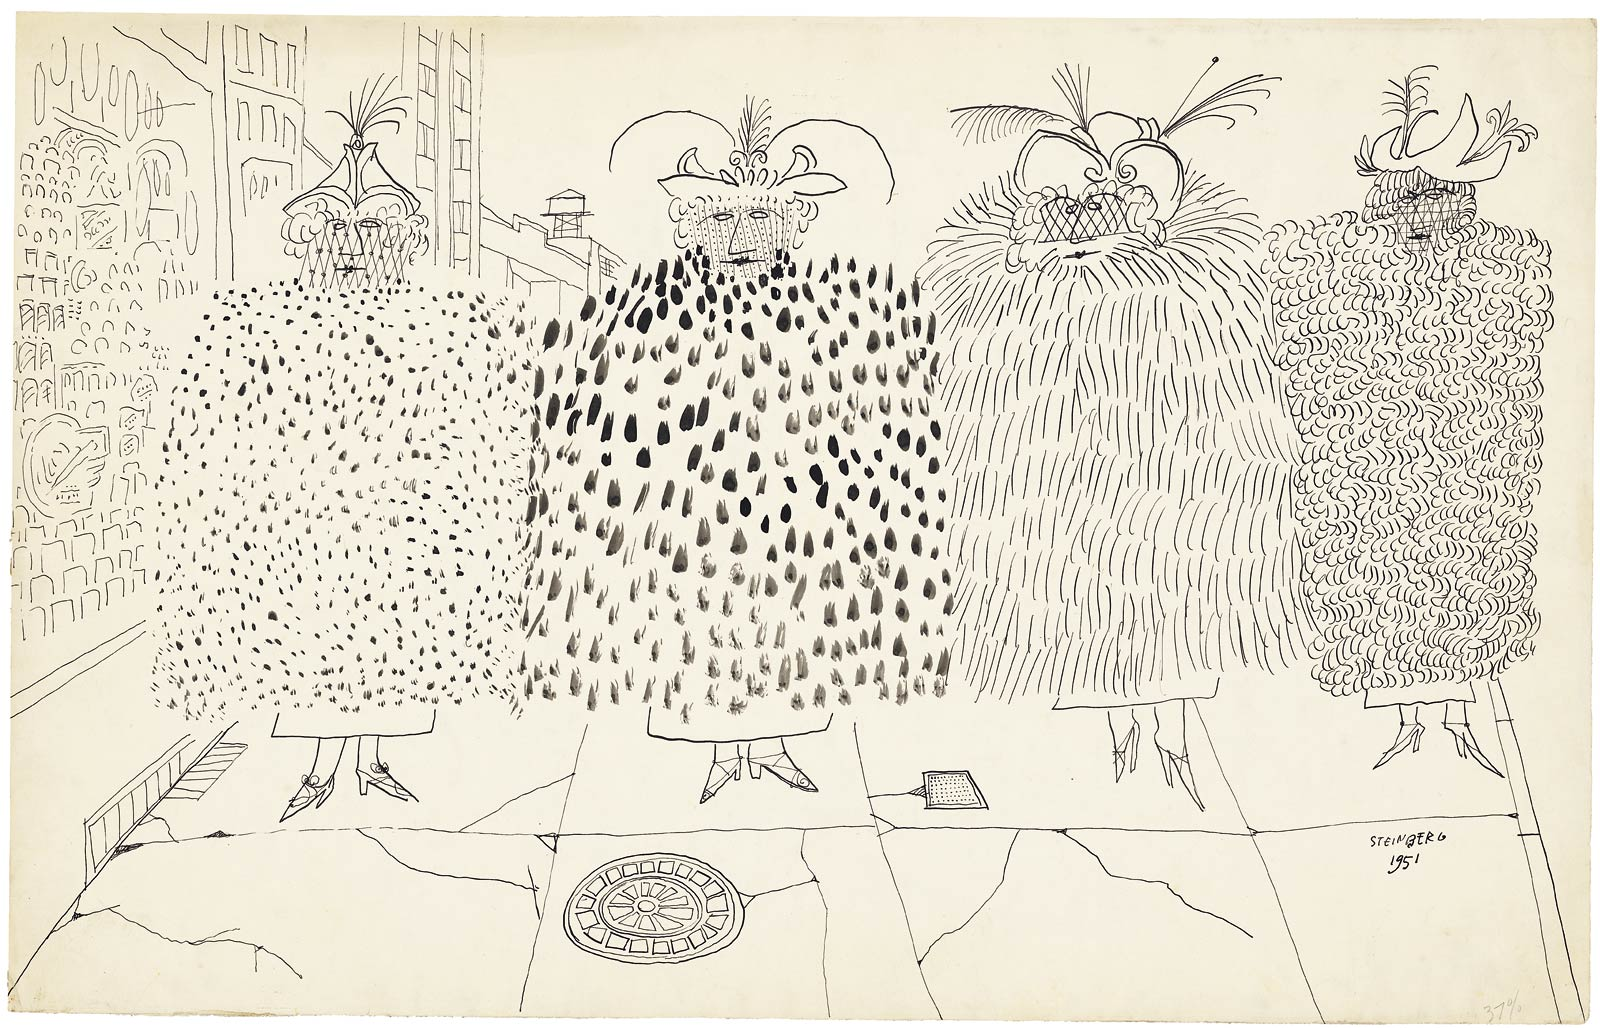 <em>Fur Coats</em>, 1951. Ink on paper, 14 ½ x 23 in. The Art Institute of Chicago; Gift of The Saul Steinberg Foundation.